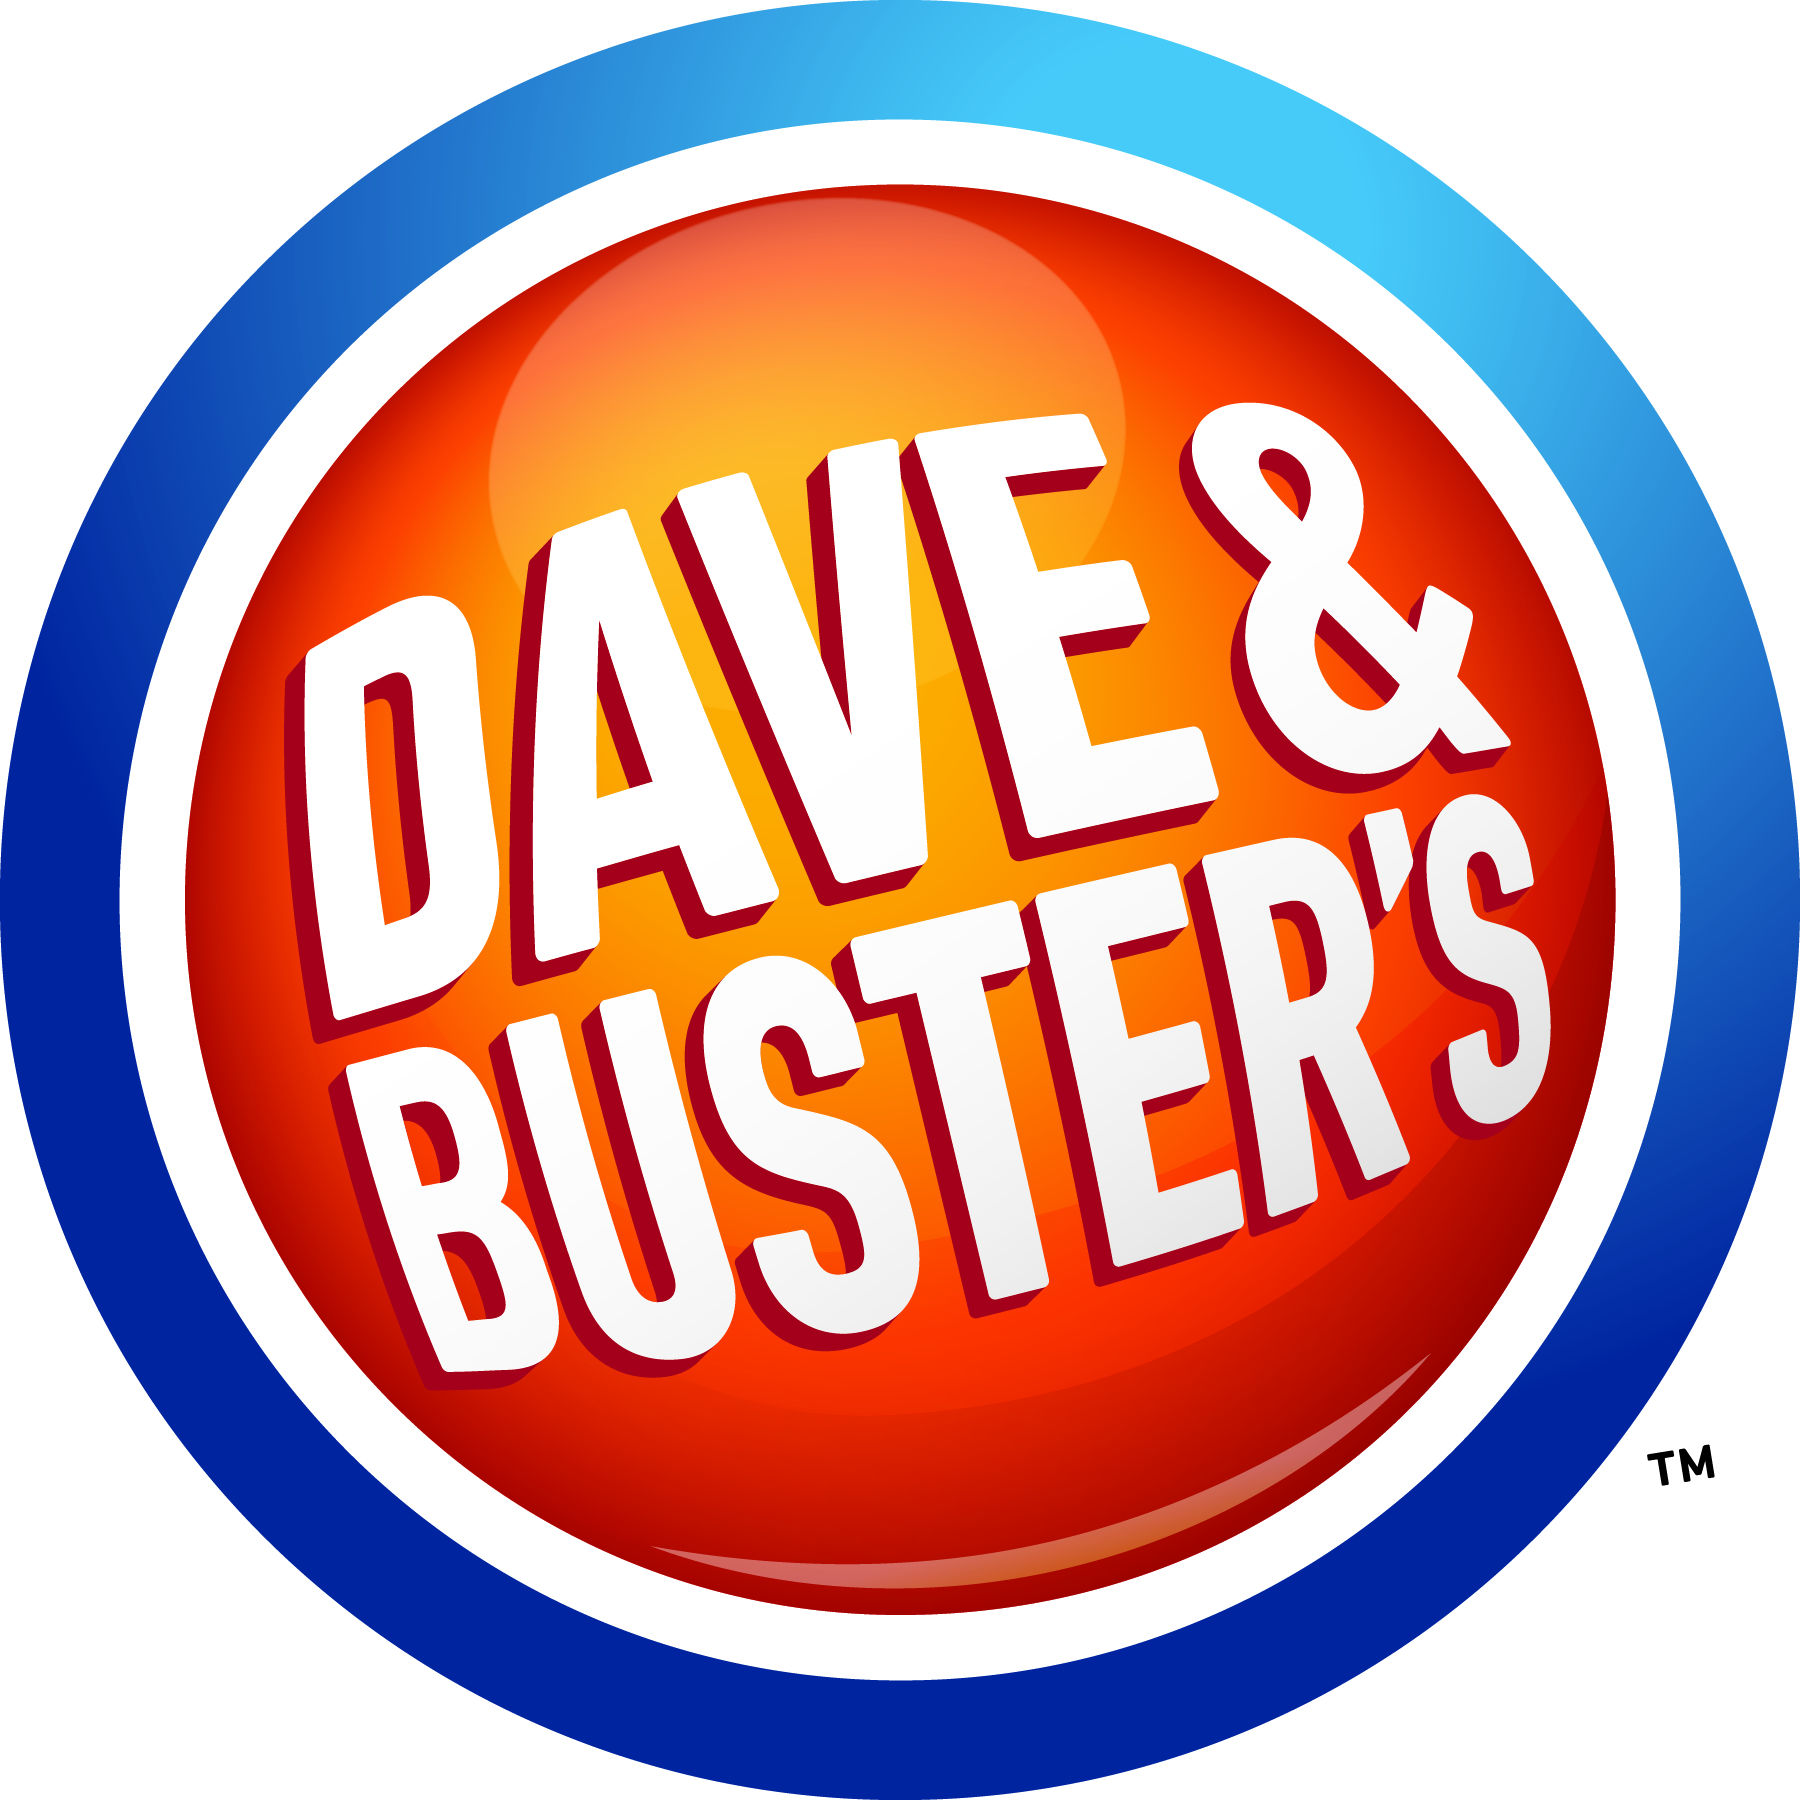 C- Dave & Busters